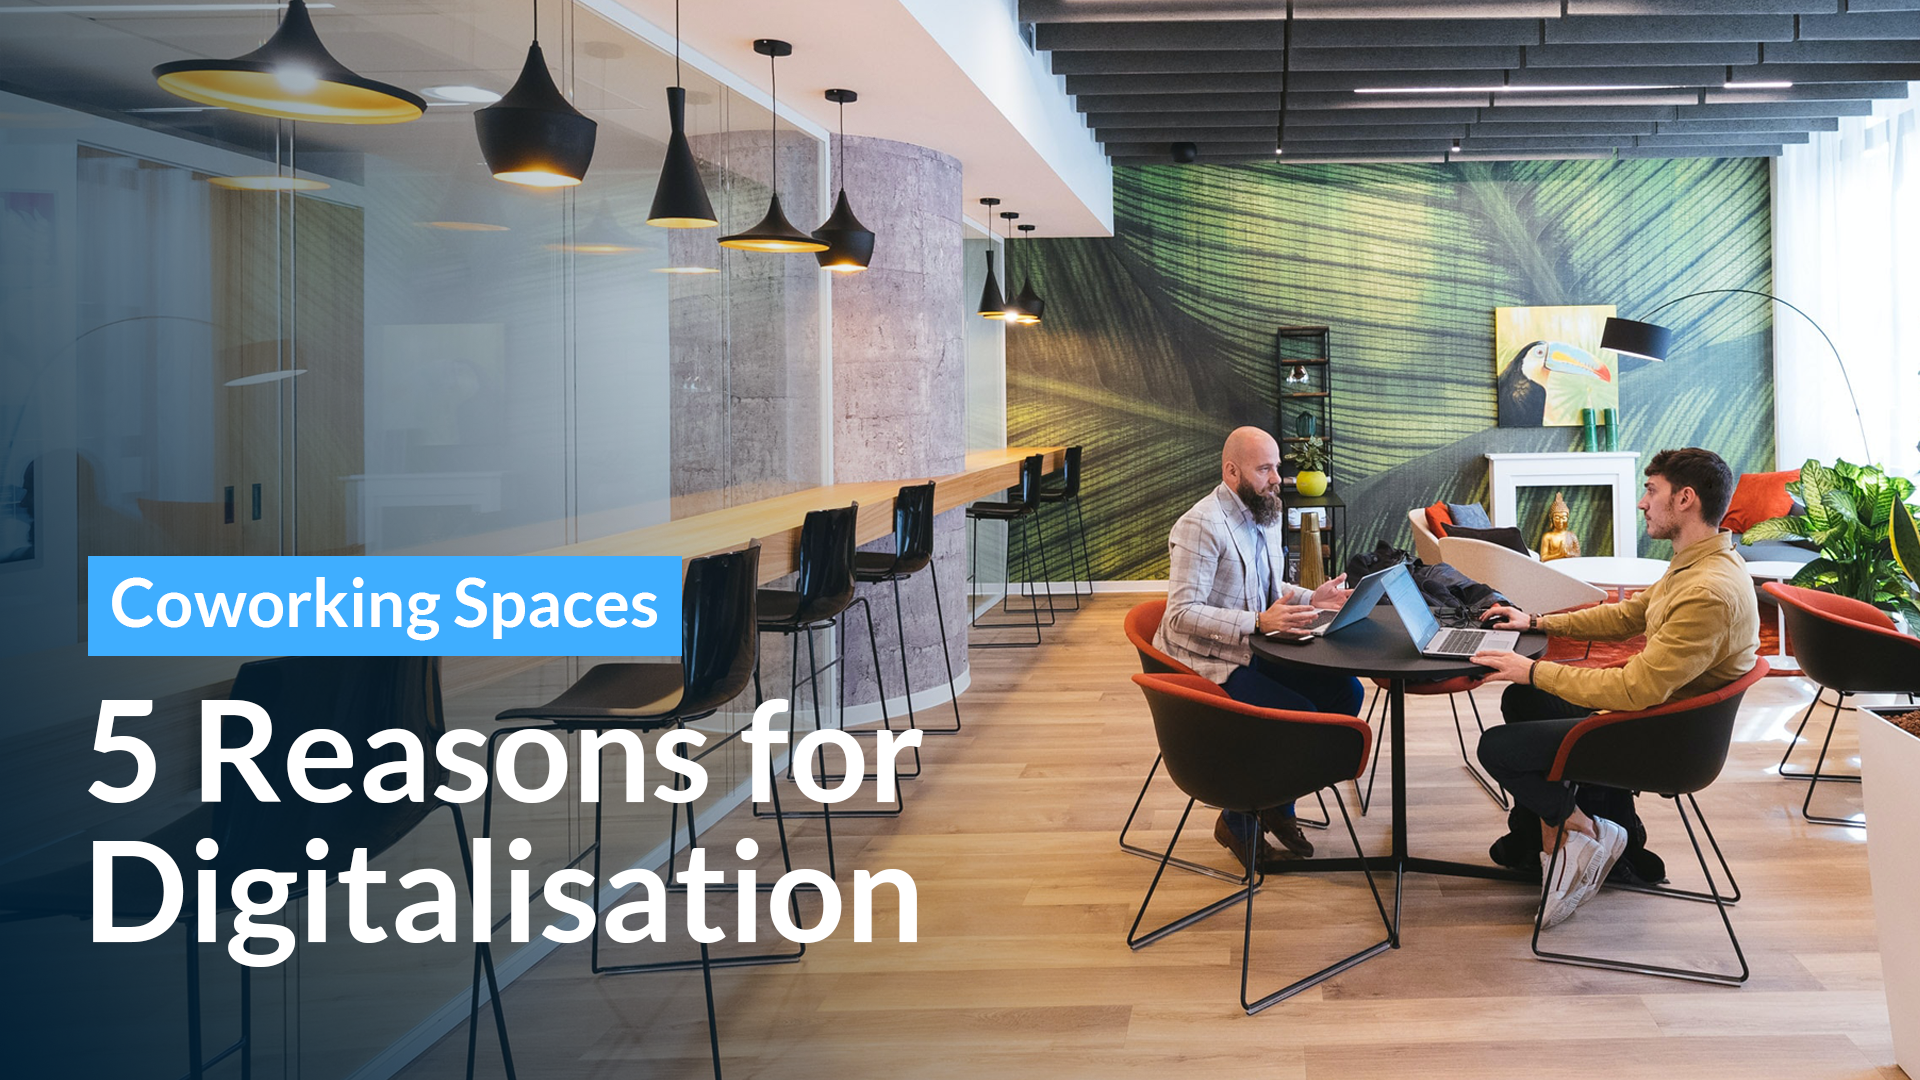 Coworking Spaces: 5 reasons why they benefit from digitization